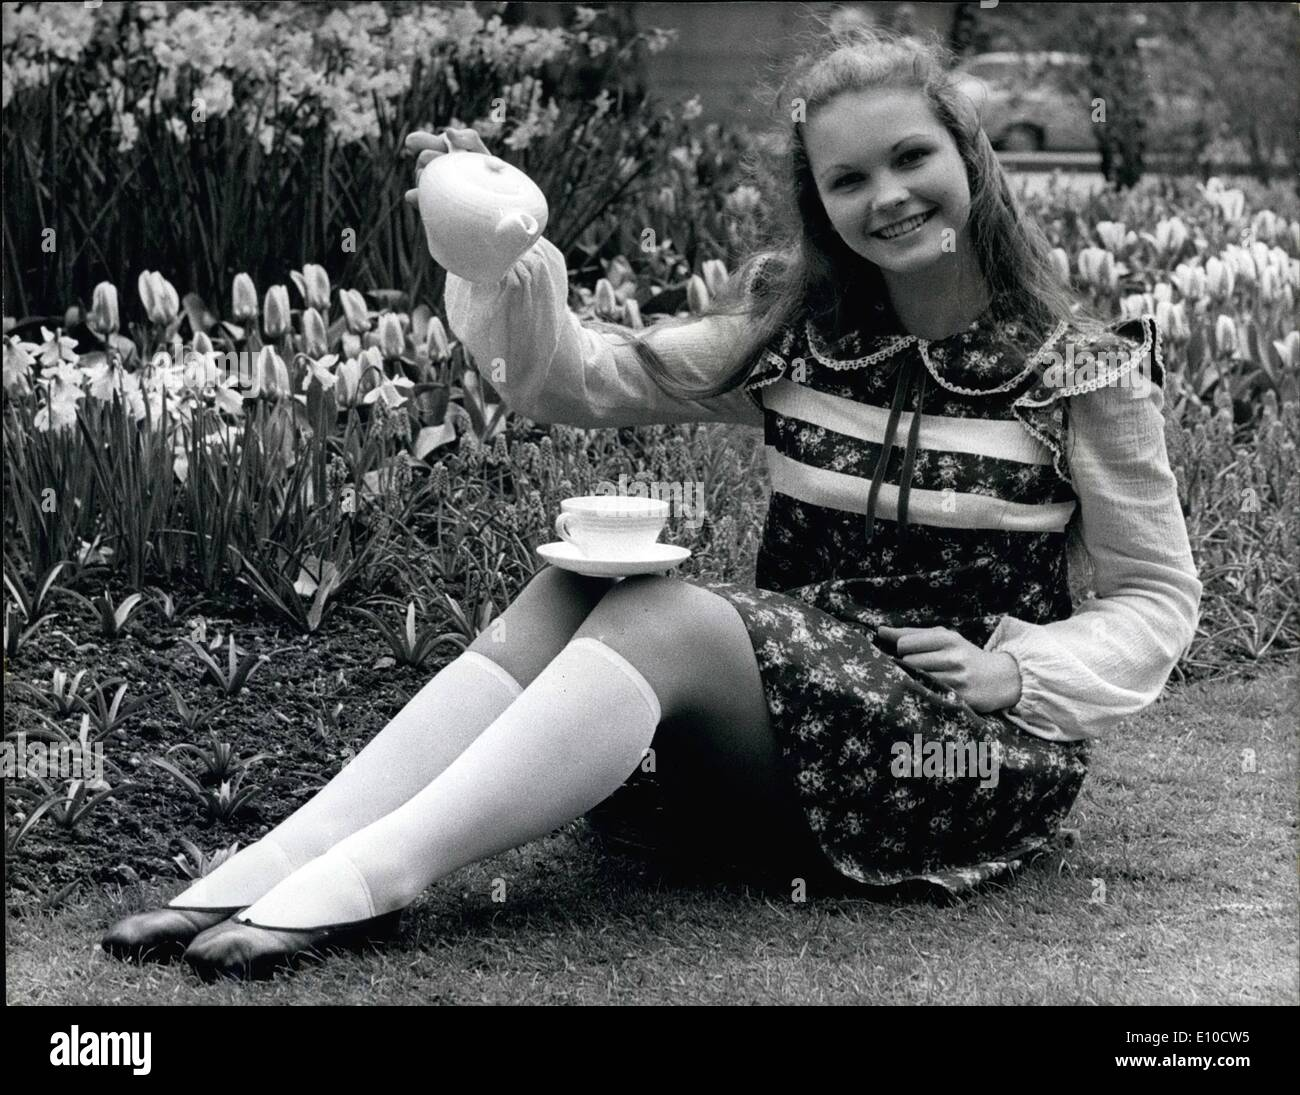 Apr. 04, 1972 - Alice Role For Fiona Fiona Fullerton, 15, happily looks into the mirror in London yesterday after the announcement that she is to play the little role in Josef Shaftel's film ''Alice's Adventures in Wonderland'' A pupil at Elmhurst Ballet School, Camberley, Surrey, she has already appeared in two films ''Run Wild, Run Free'' and ''Nicholas and Alexandra' - Stock Image